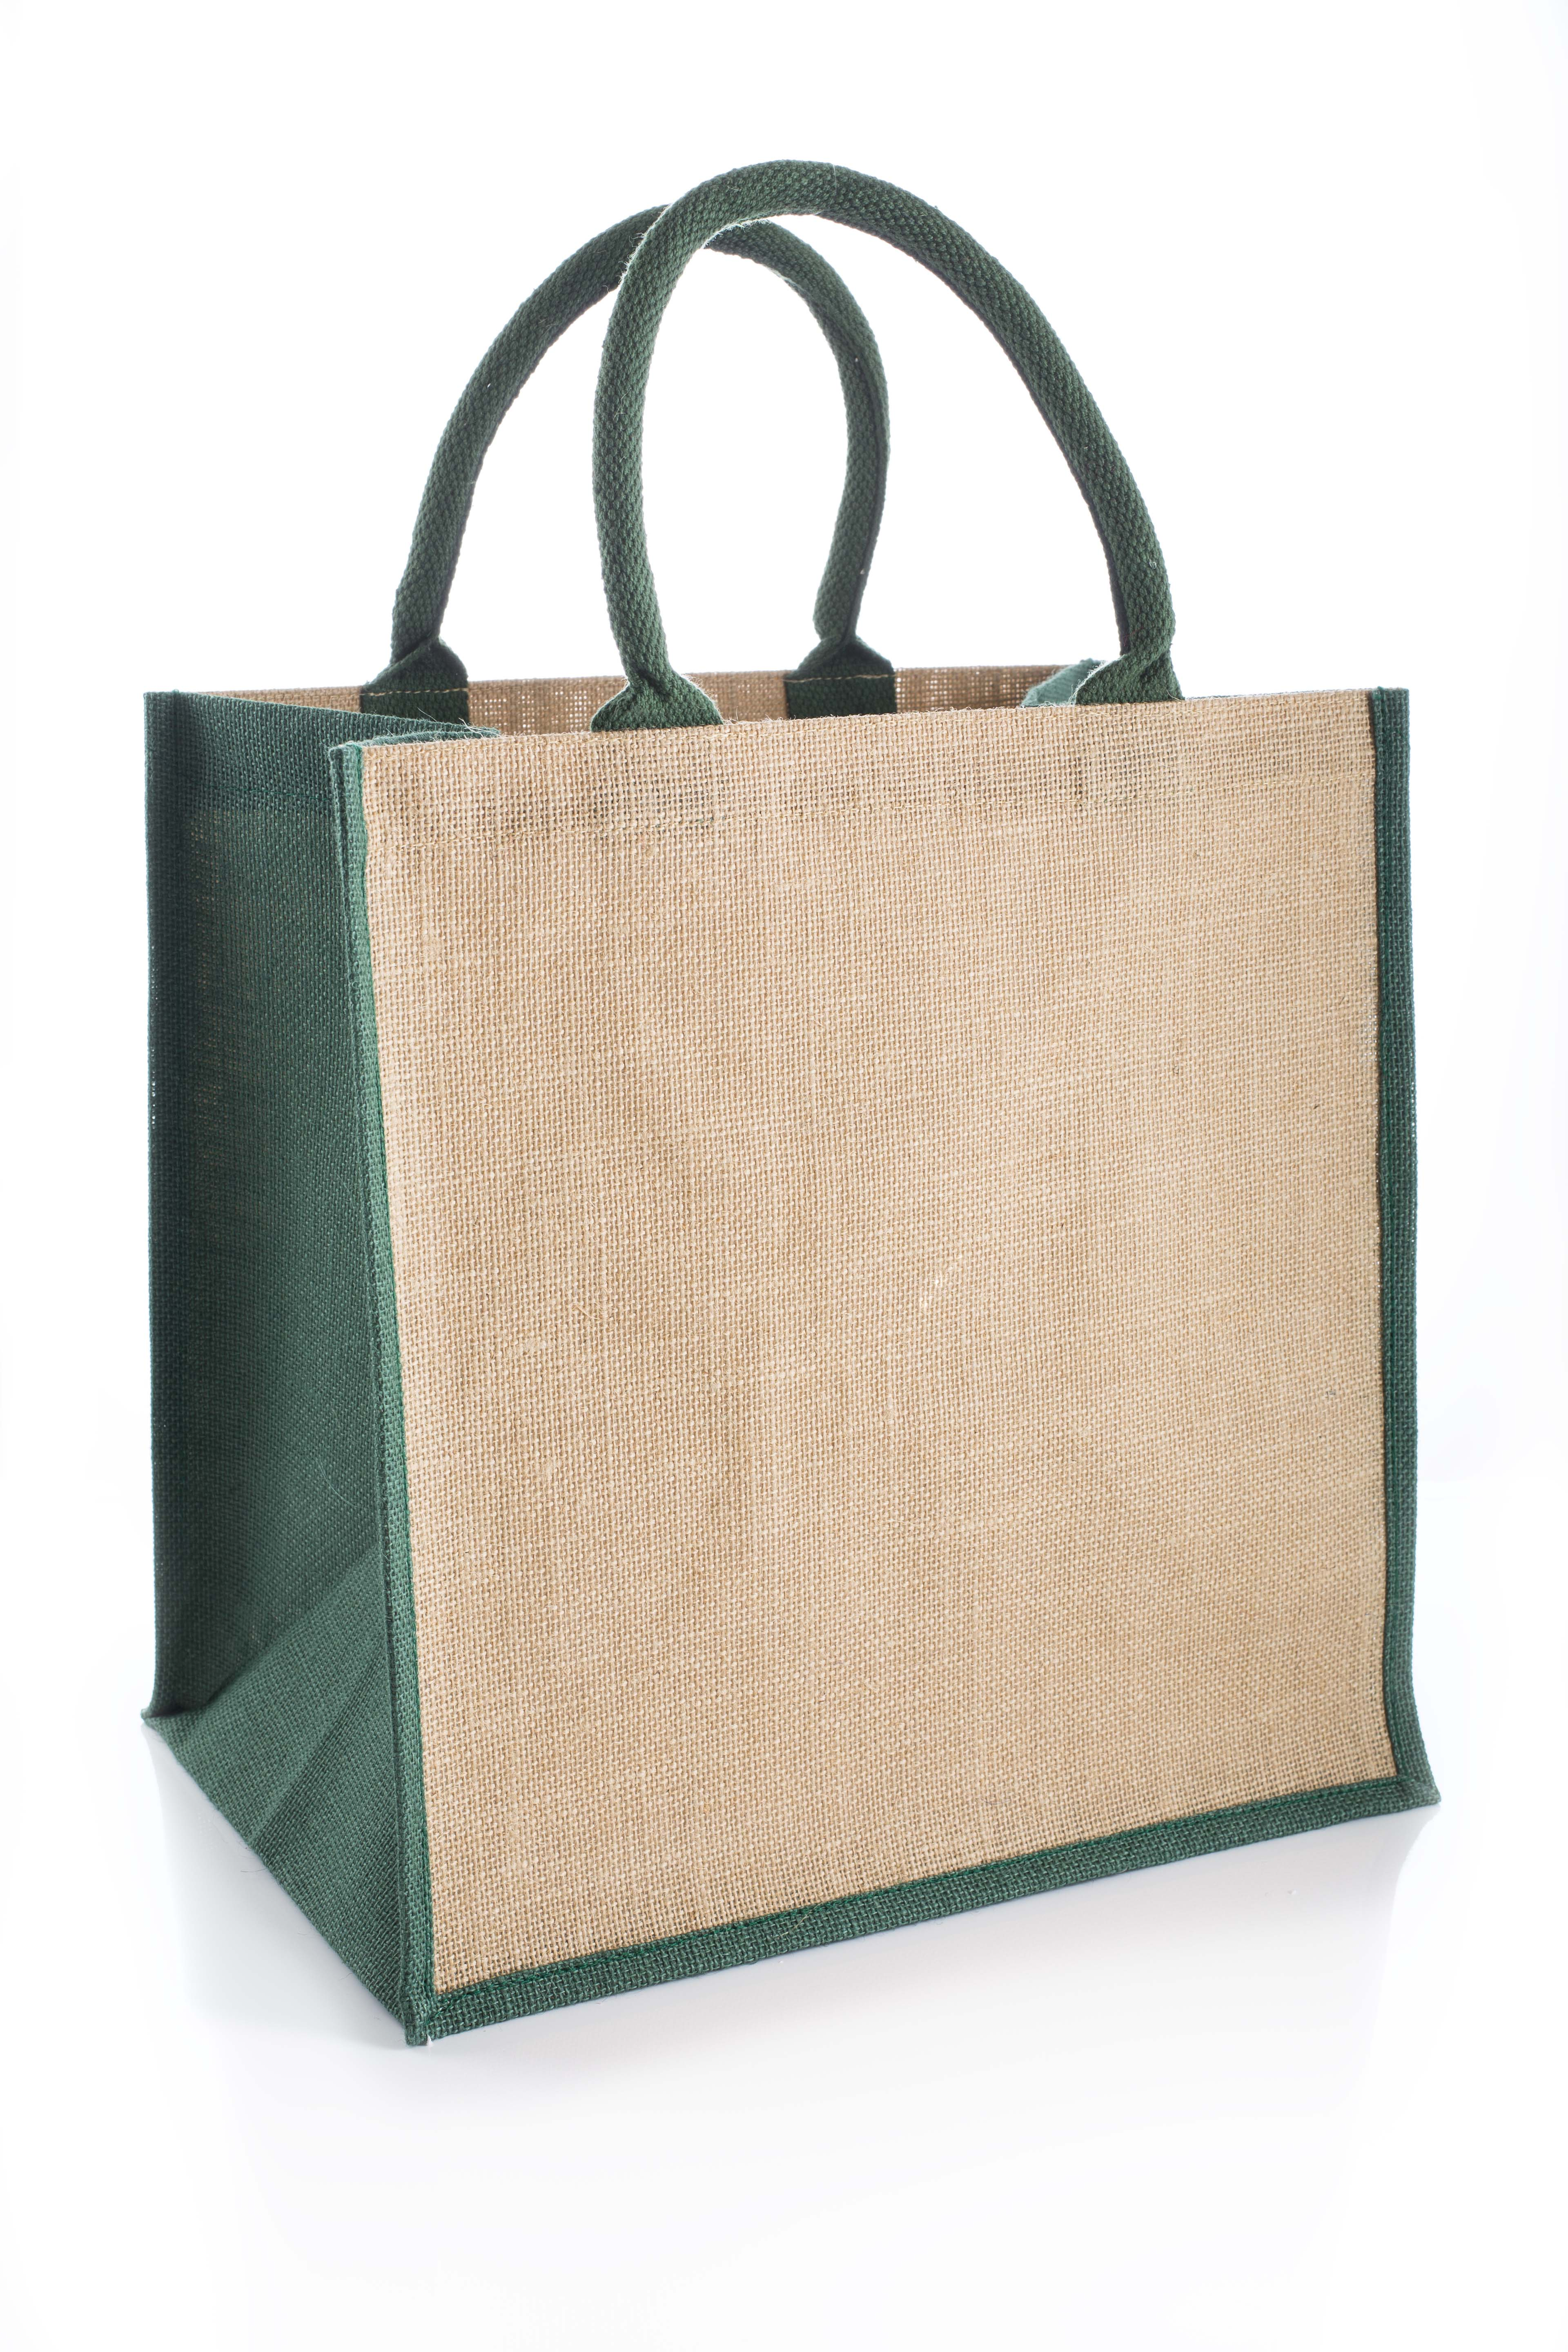 Green Brecon Jute Bag